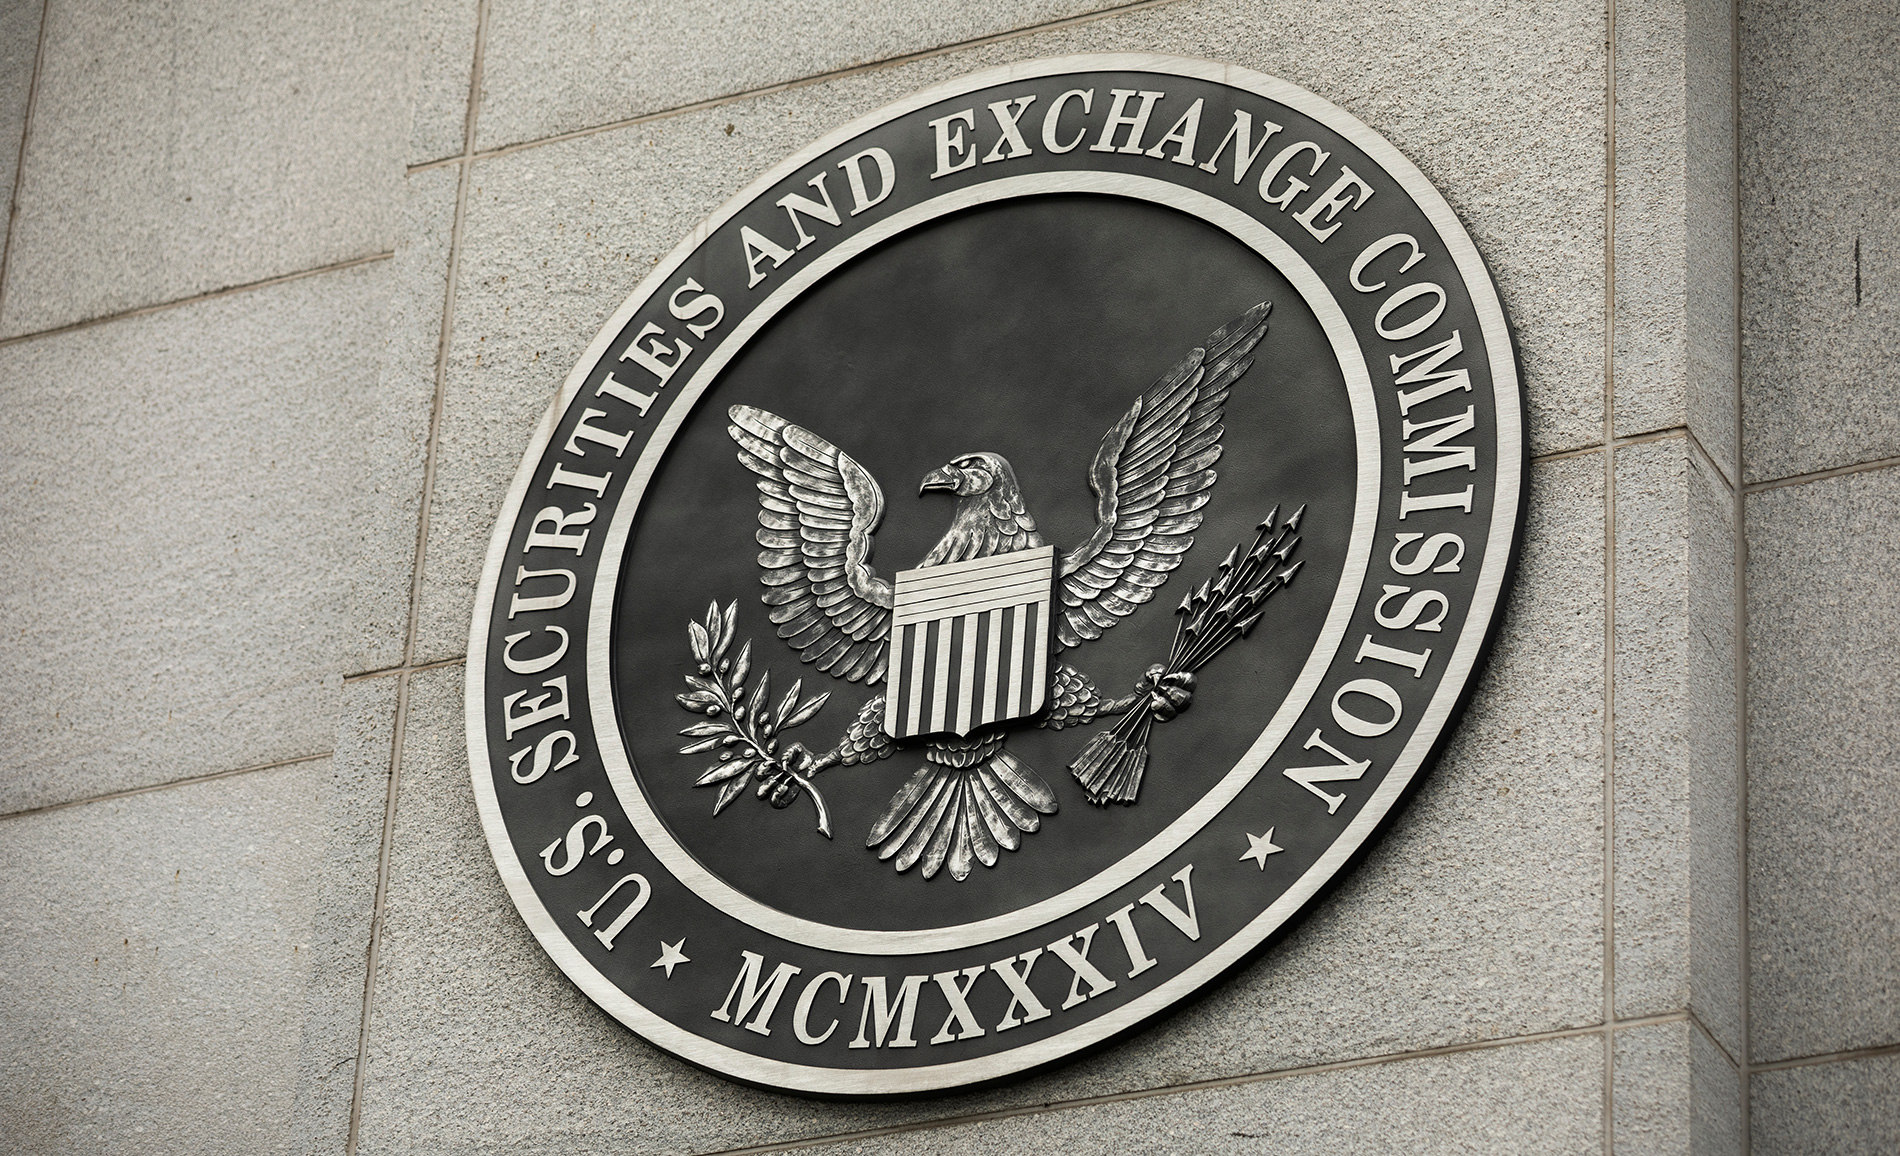 SEC chair doubles down, tells crypto firms 'come in and talk to us'